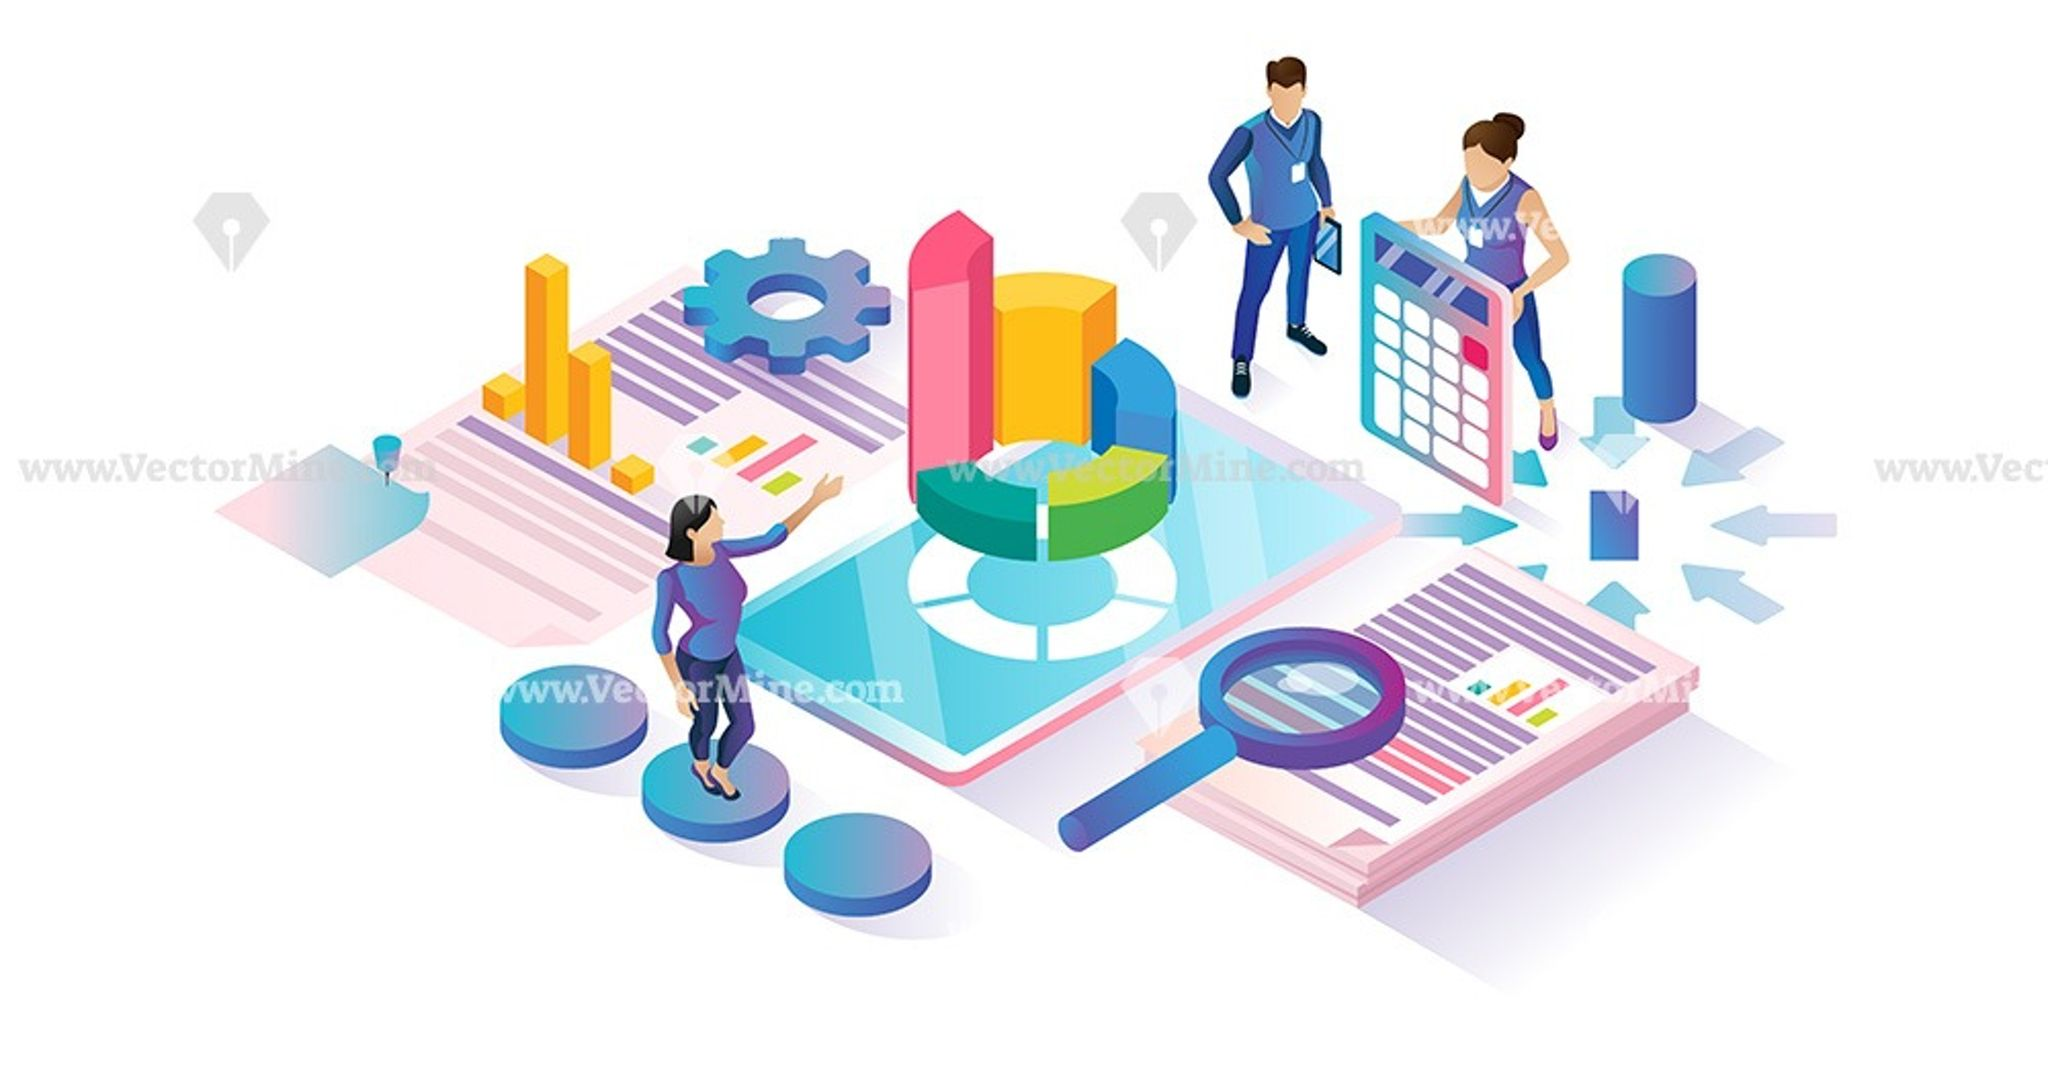 Data Research Isometric Cyberspace Concept Illustration